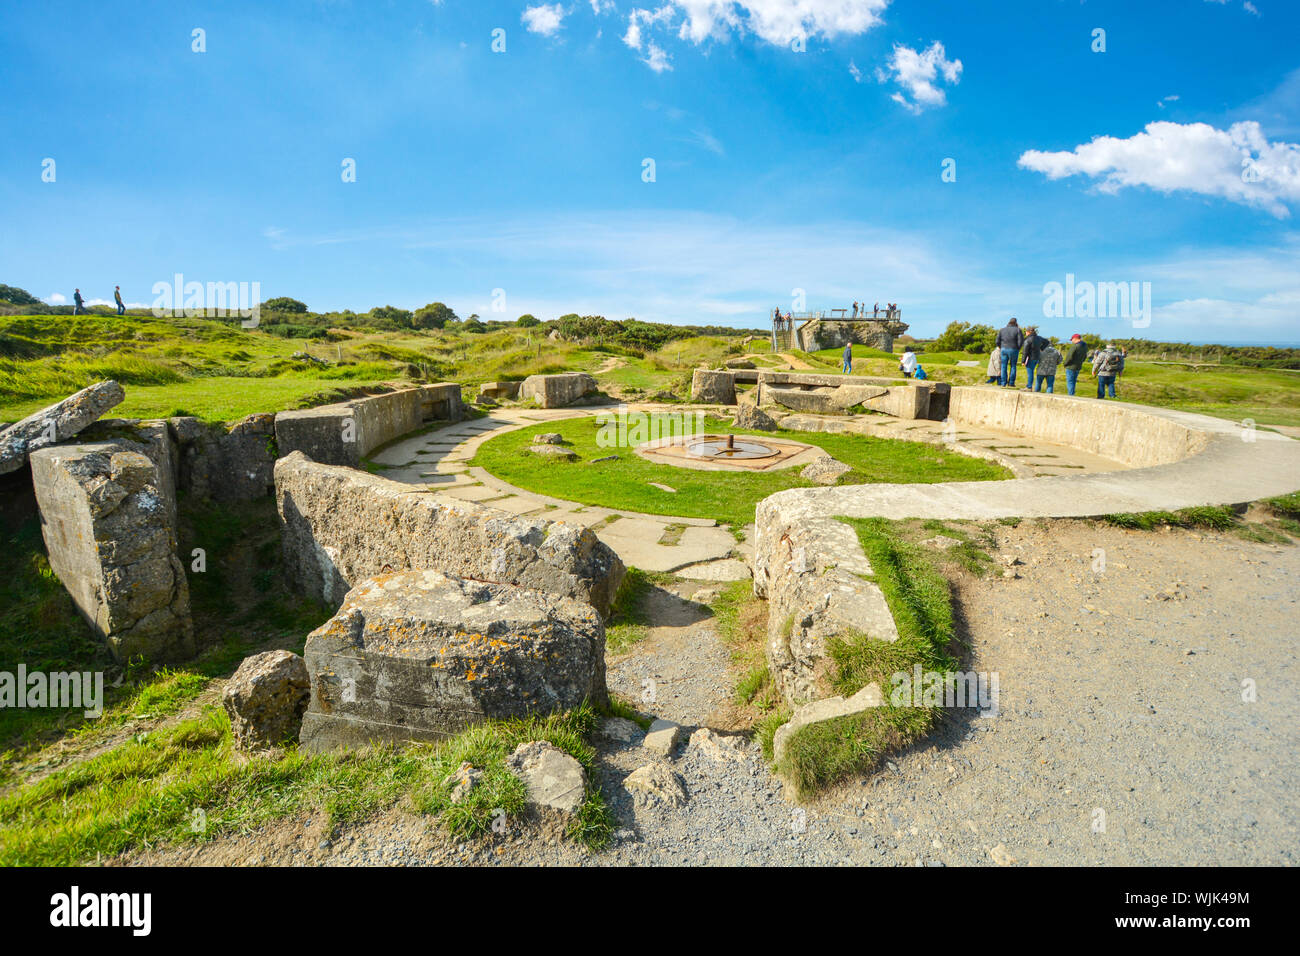 The remains of a german bunker at Pointe du Hoc, the location of the allied invasion of Normandy, France on the coast of the English Channel Stock Photo